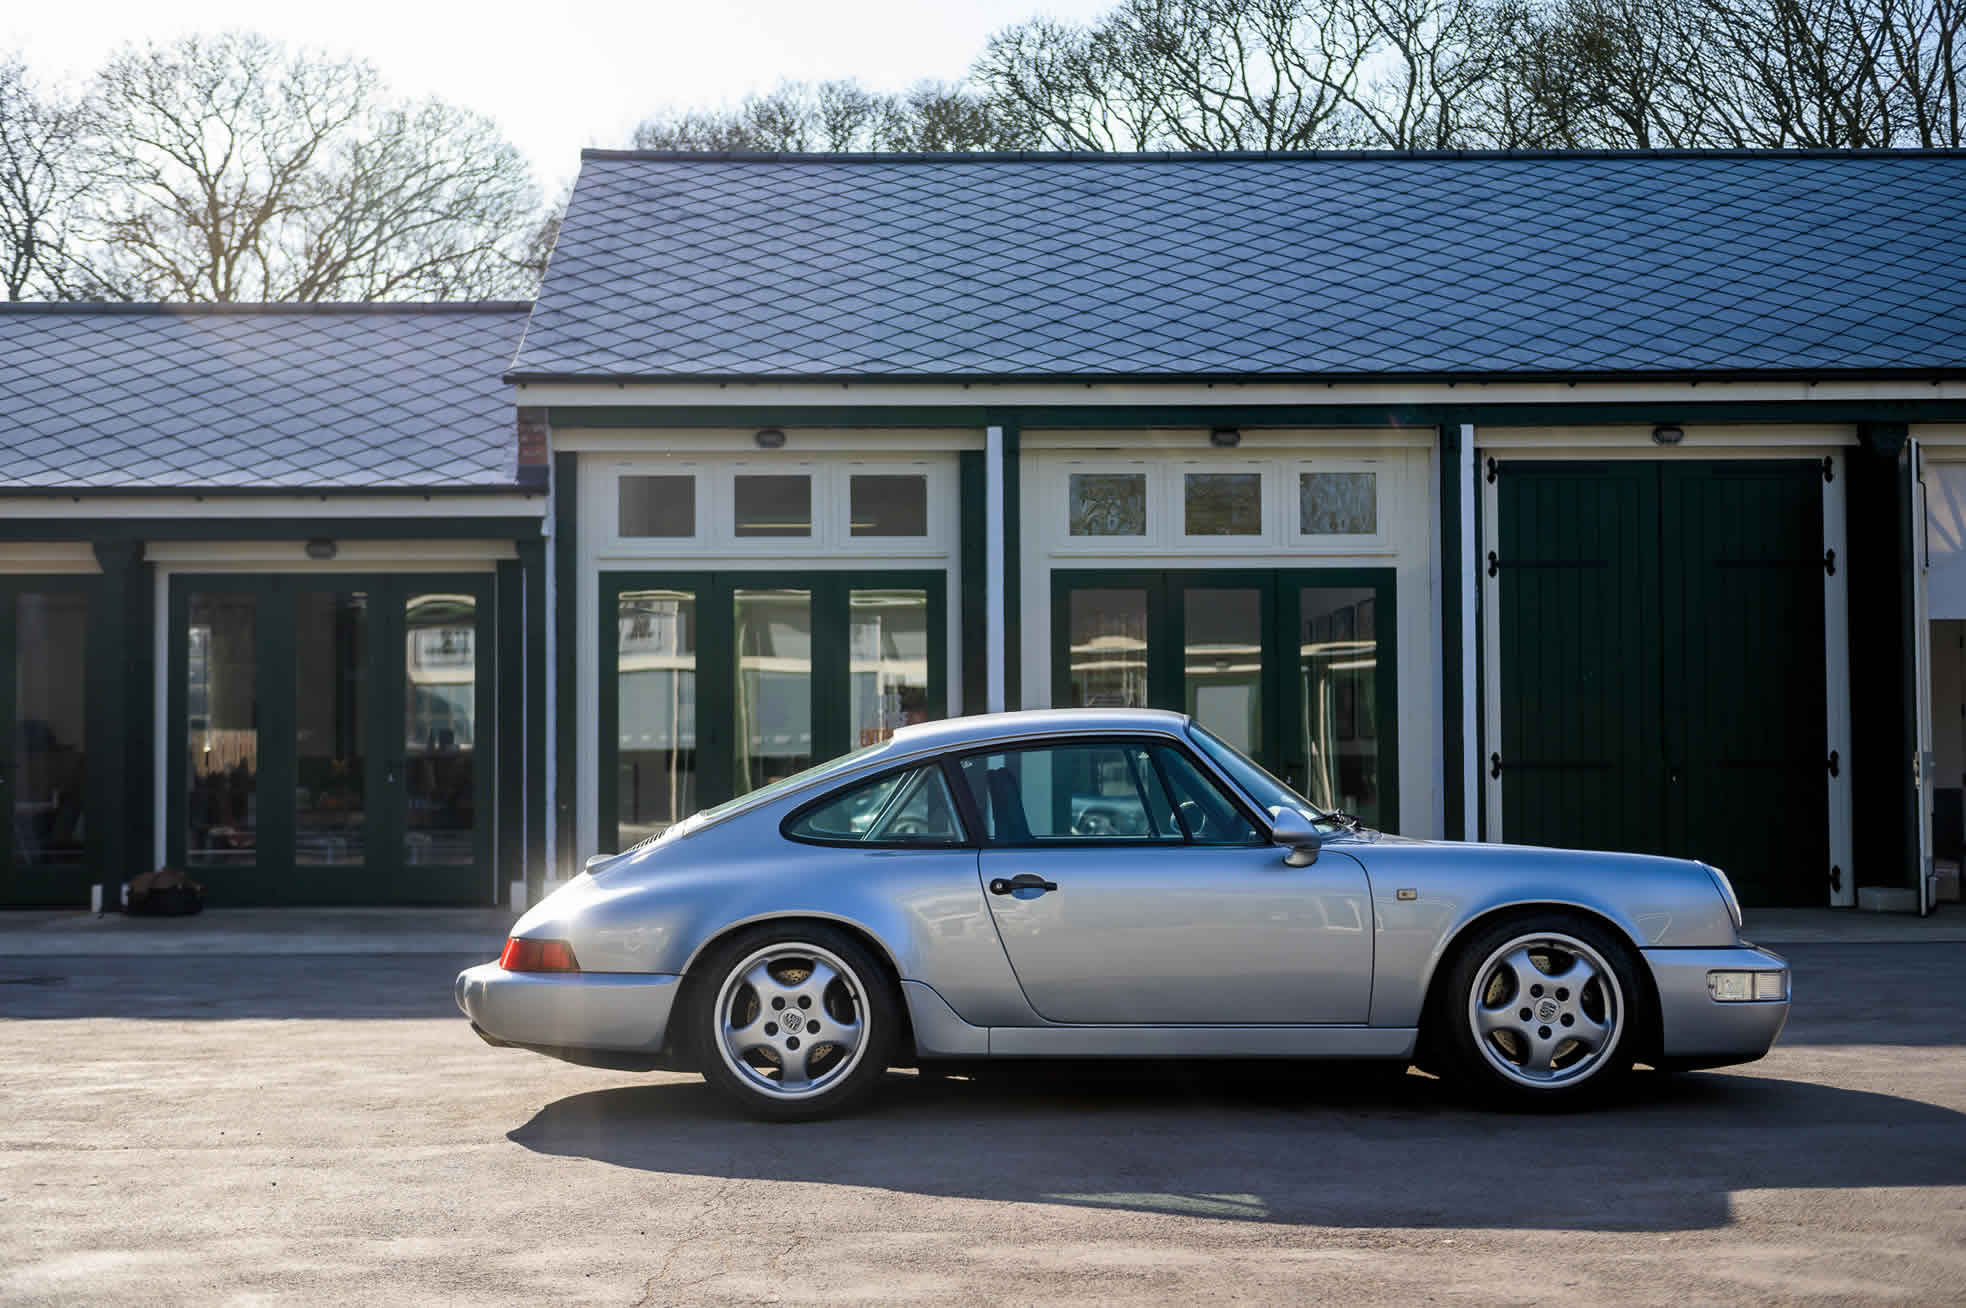 1992 Porsche 964 RS (RHD), for Sale at Sports Purpose, Bicester Heritage, Oxon - side view